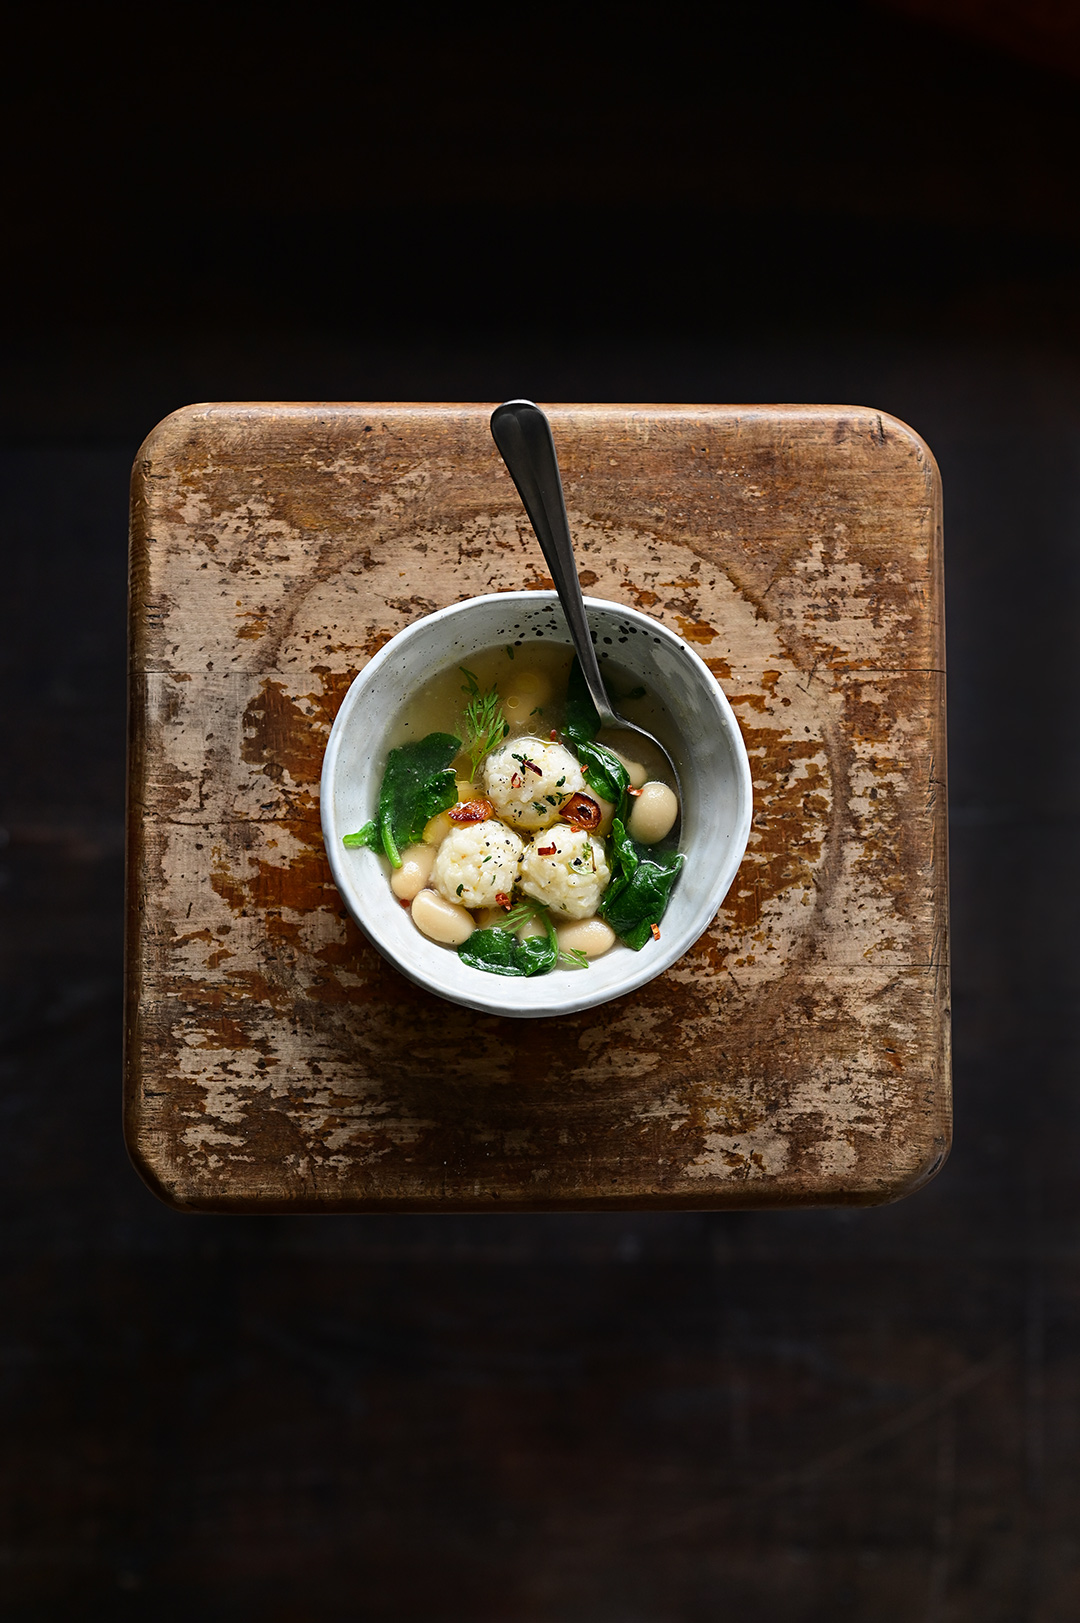 serving dumplings | Parmesan rice ball soup with spinach and white beans